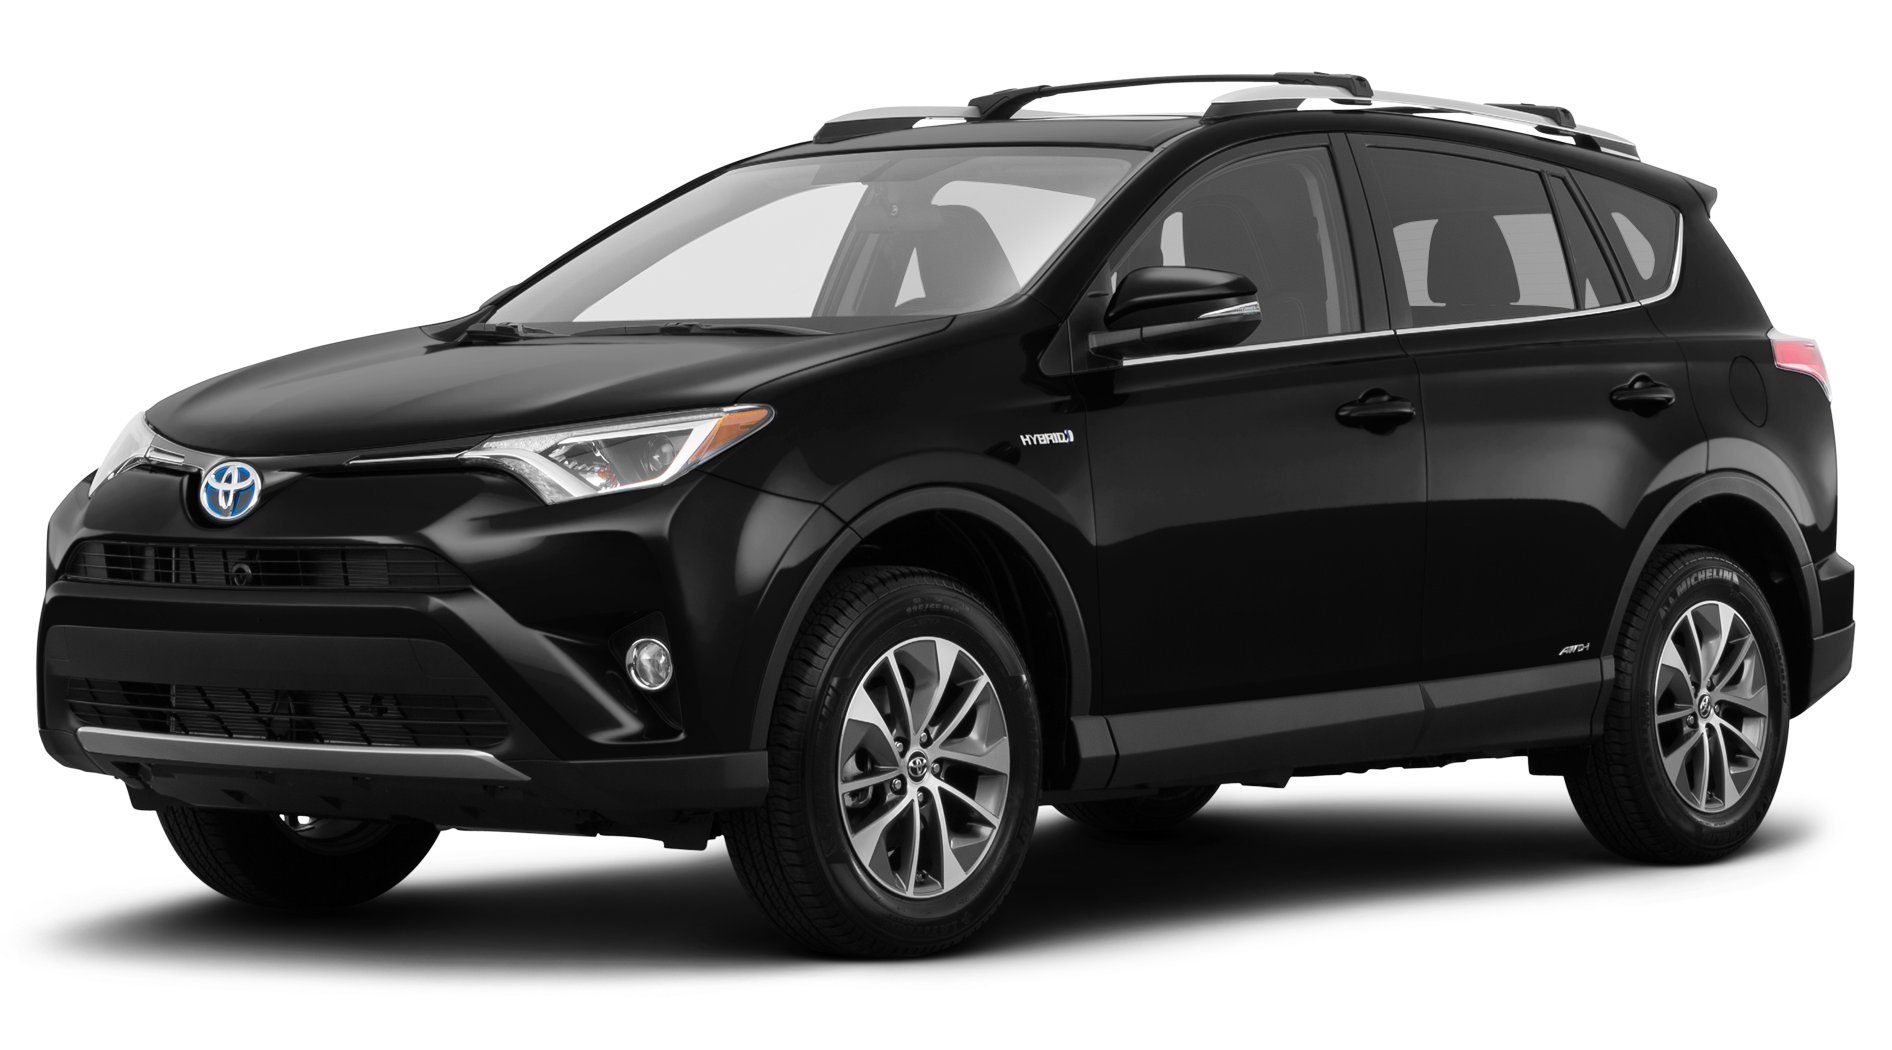 2016 toyota rav4 reviews images and specs vehicles. Black Bedroom Furniture Sets. Home Design Ideas